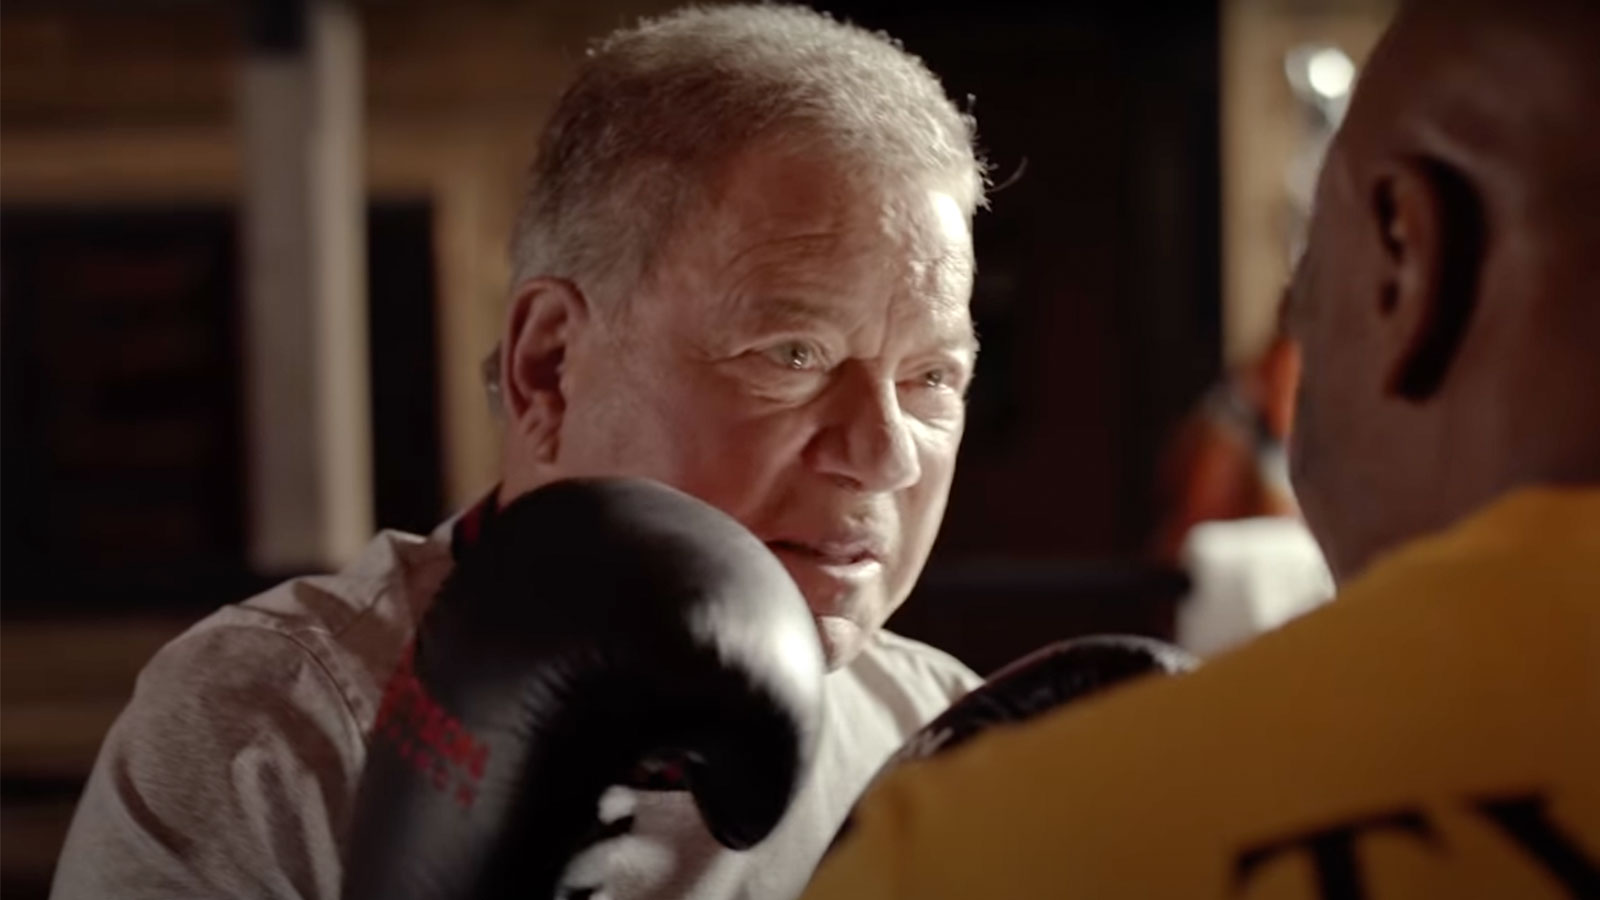 William Shatner Takes A Punch From Mike Tyson... In New Commercial